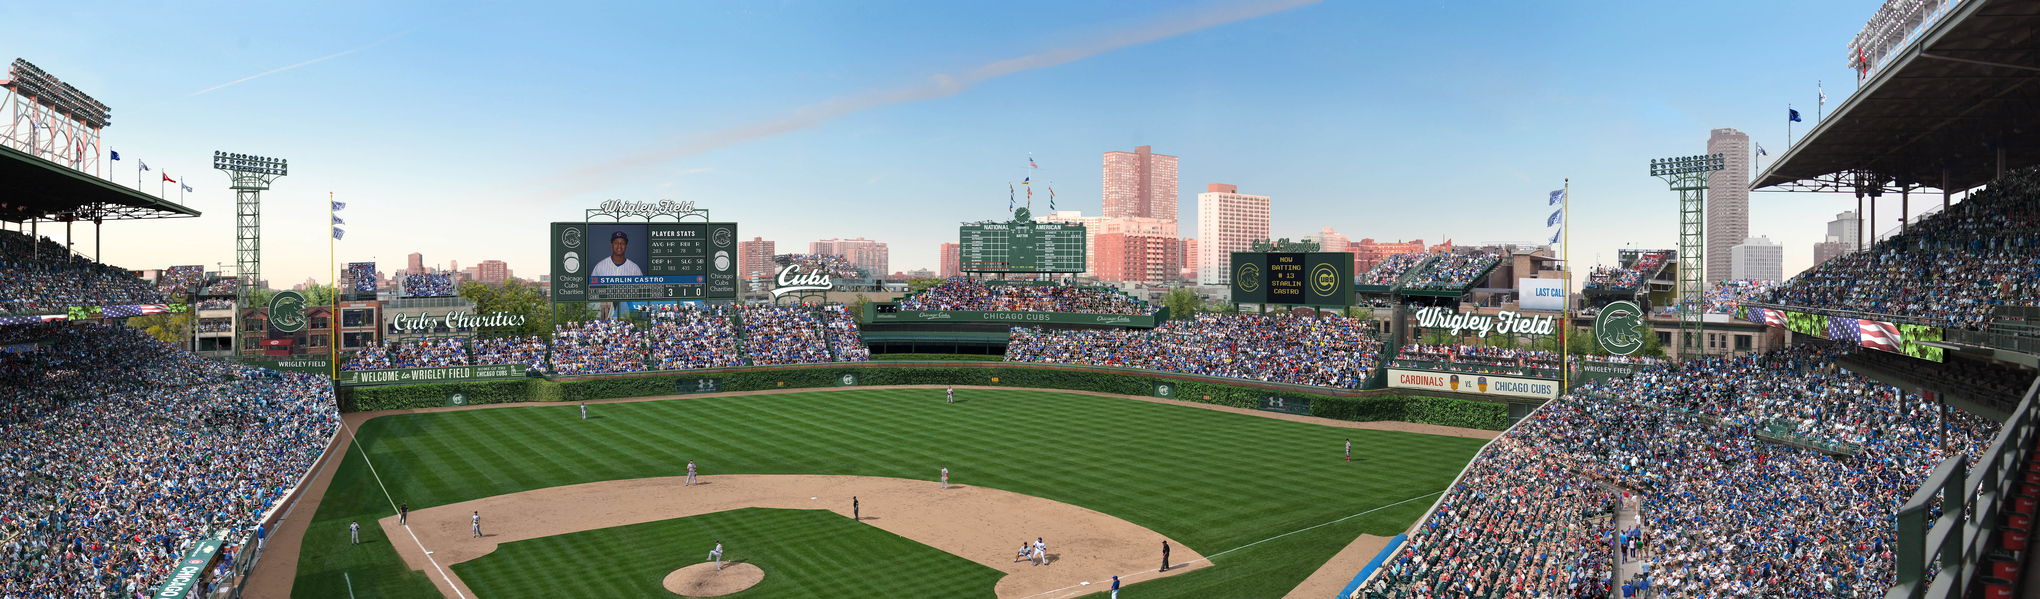 Wrigley Field Panoramic 2015 New Scoreboard Rendering with Completed Bleachers and new Scoreboards and Signage